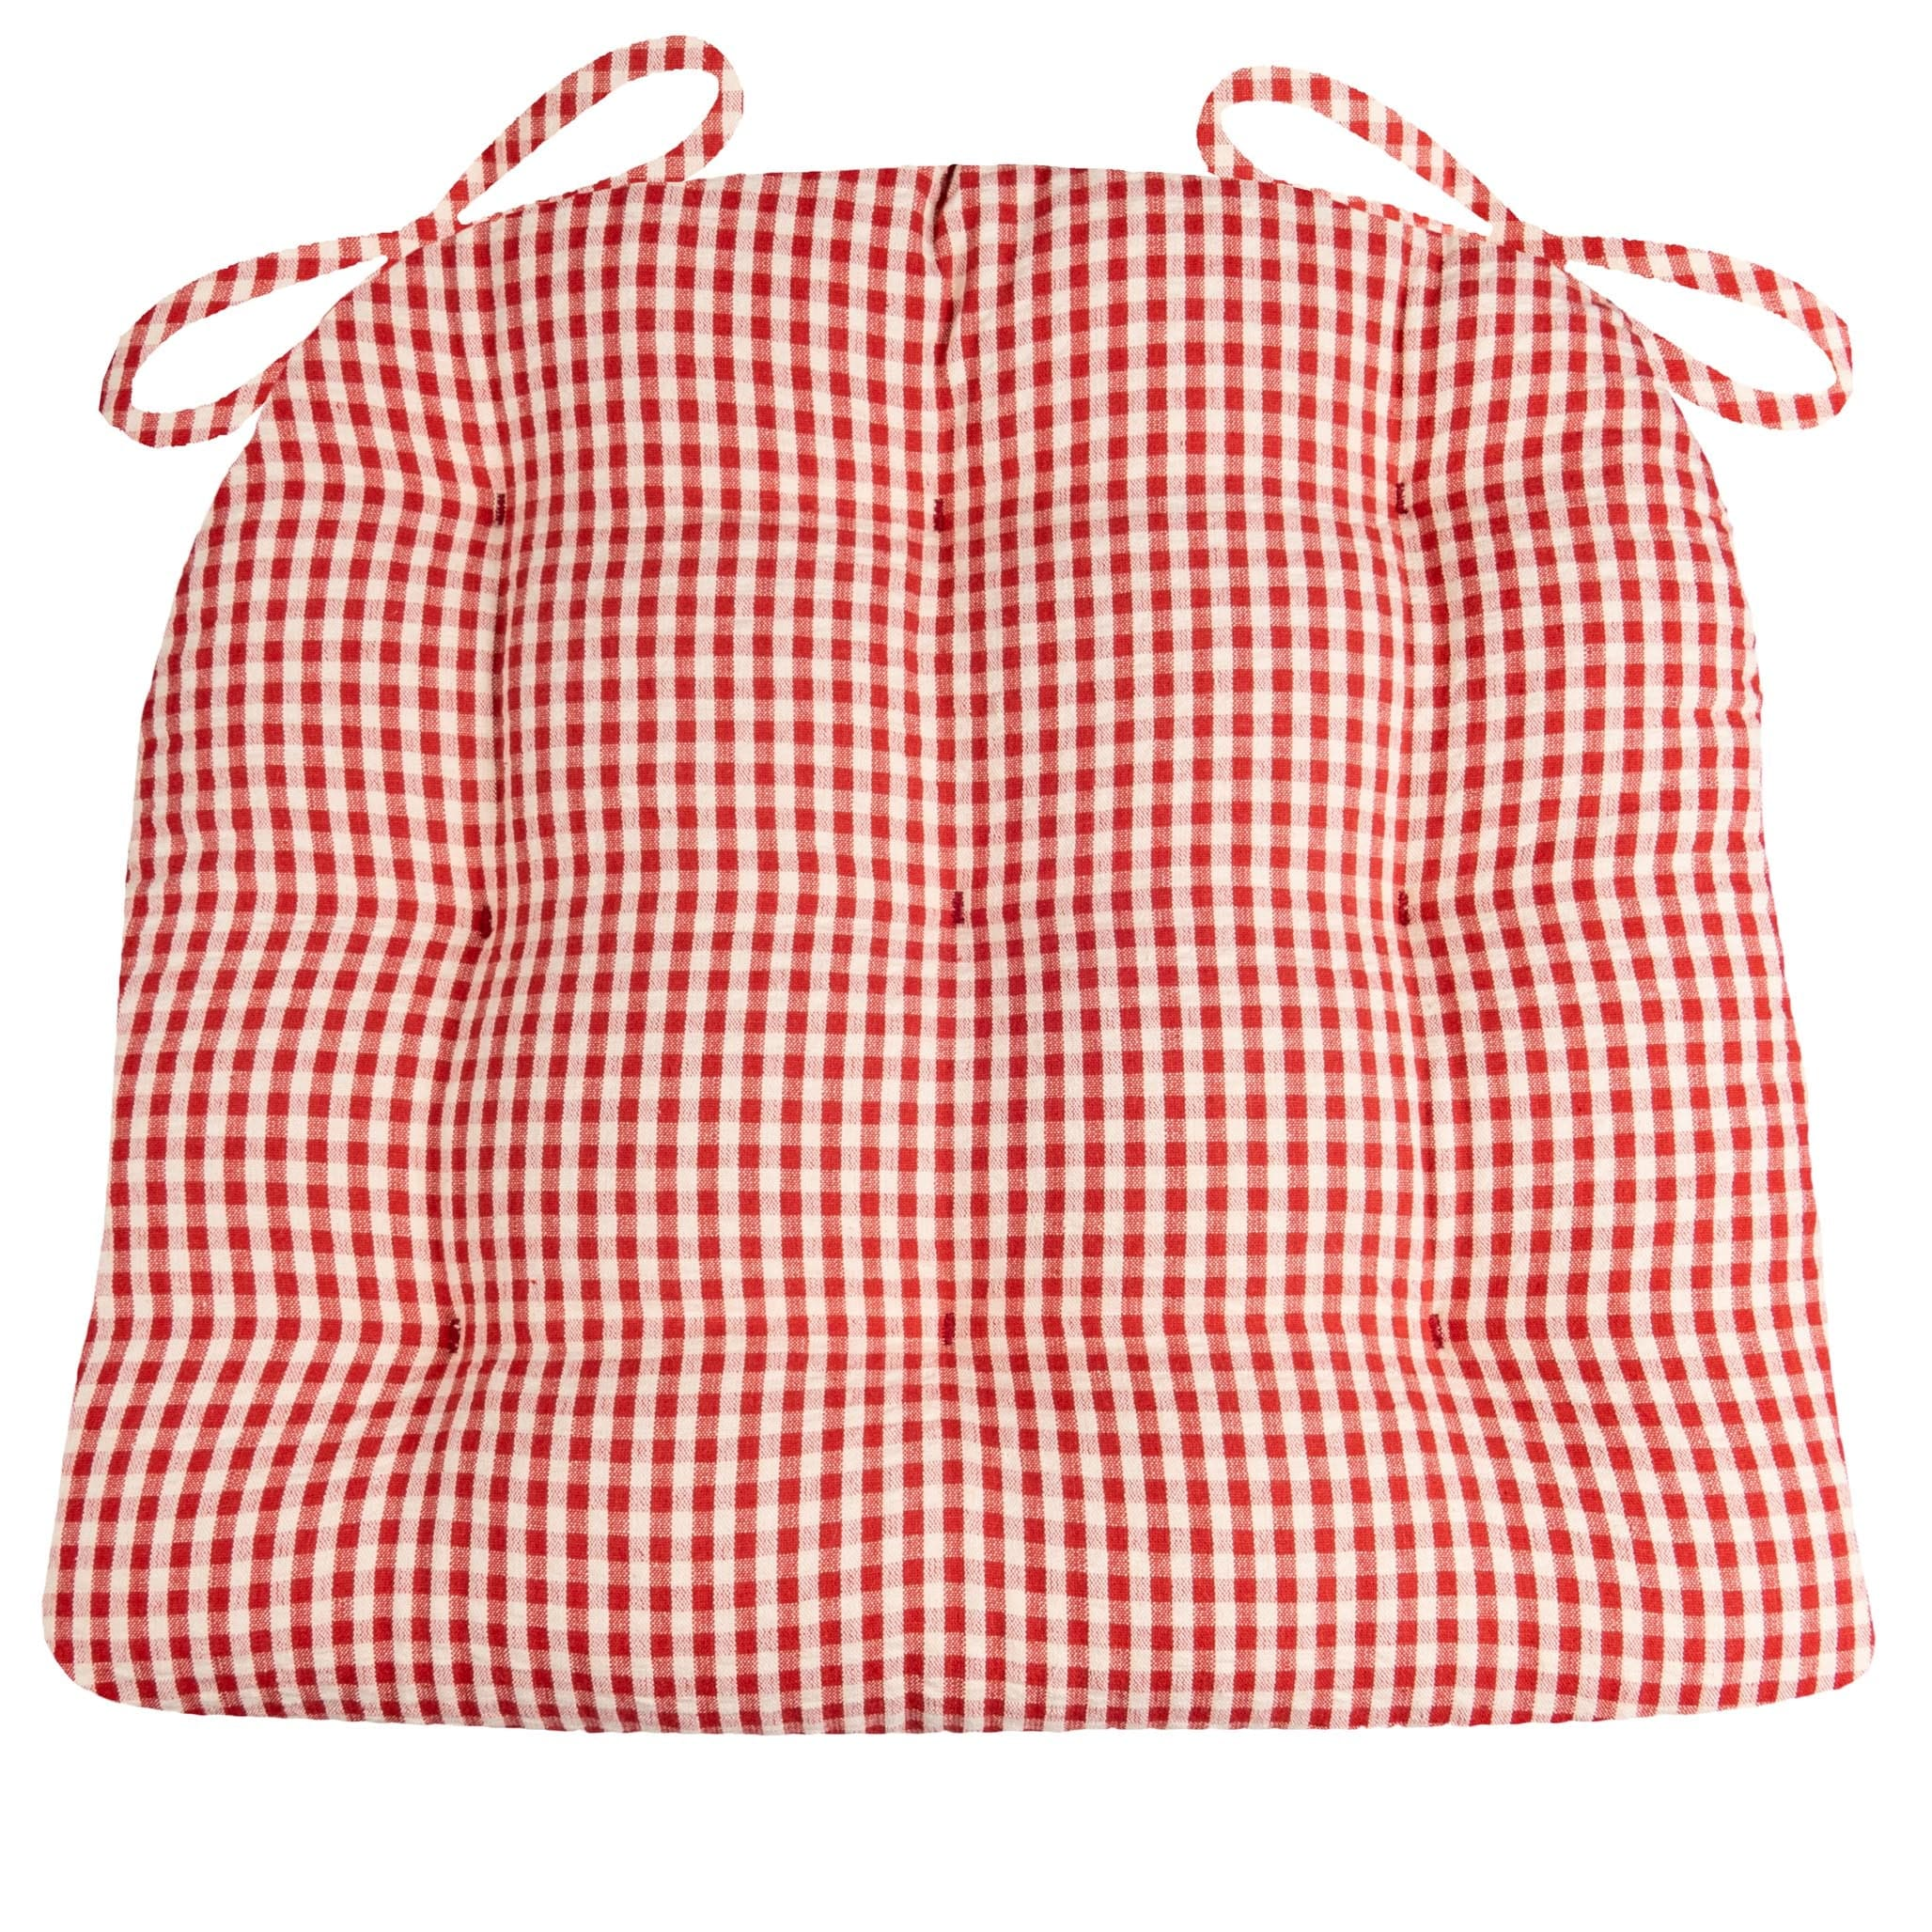 Cassidy Seersucker Red Gingham Dining Chair Pads - Latex Foam Fill, Reversible